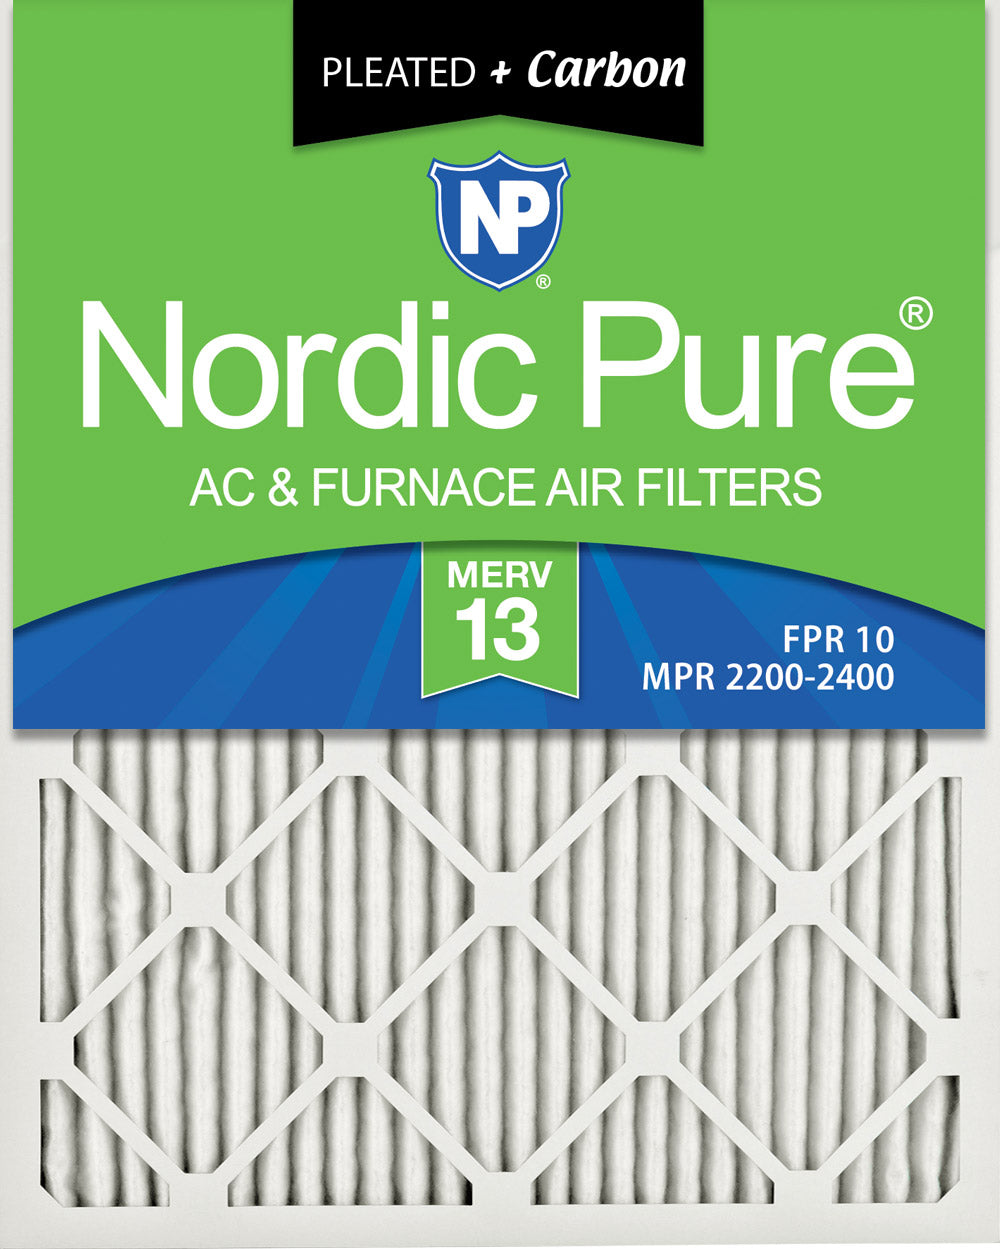 12x24x1 Pleated Air Filters MERV 13 Plus Carbon 3 Pack